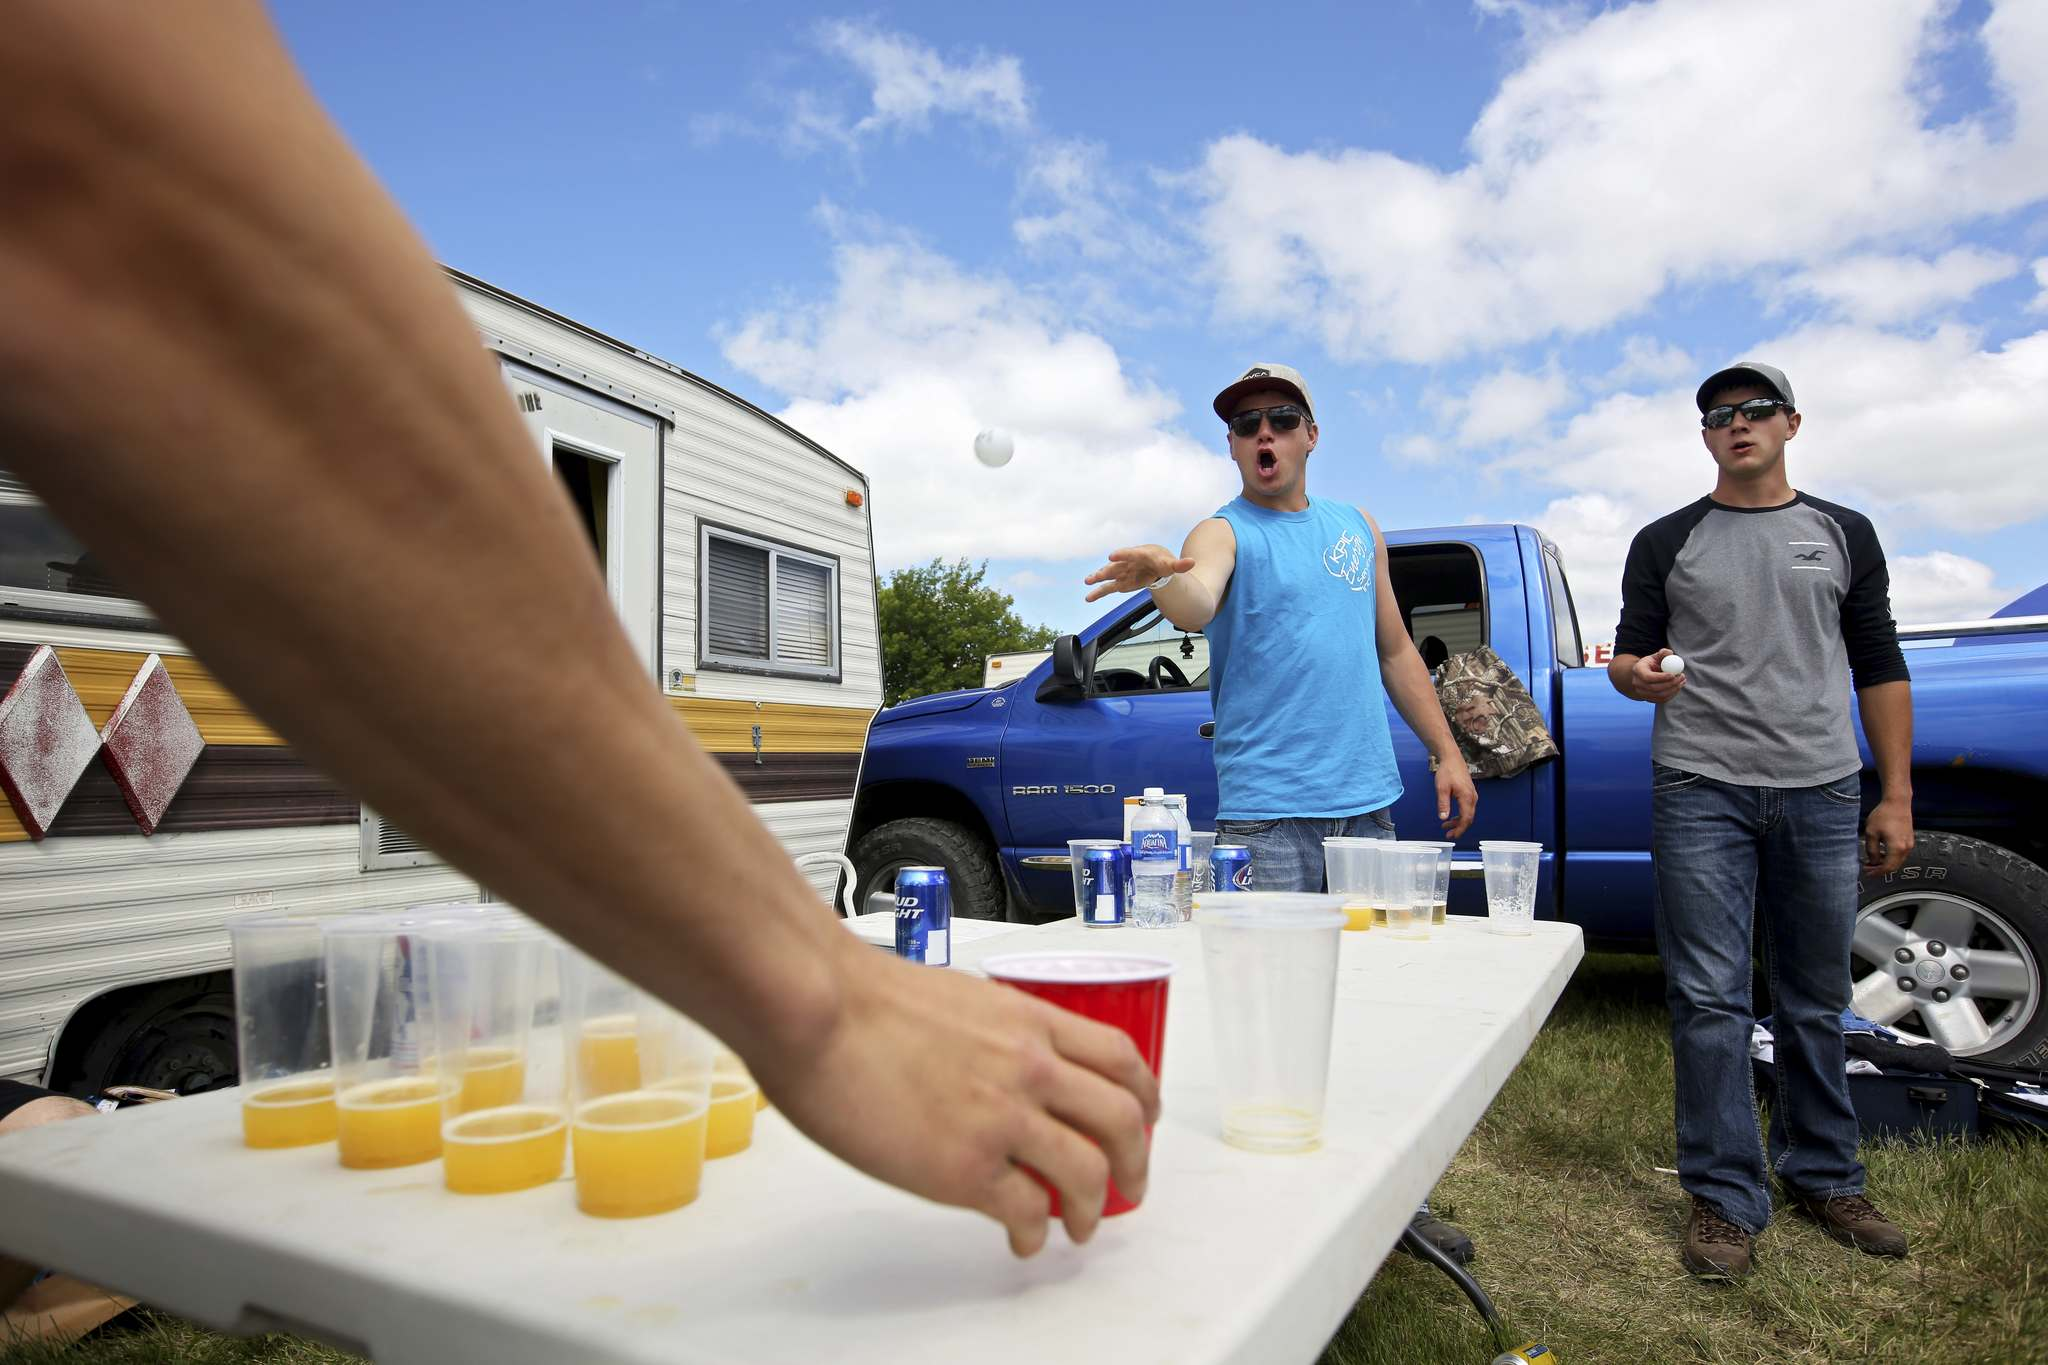 Tim Smith / The Brandon Sun Files</p><p>Campers can enjoy a game of beer pong in Manitoba provincial parks this weekend, but park police will be on the lookout for rowdyism. </p></p>